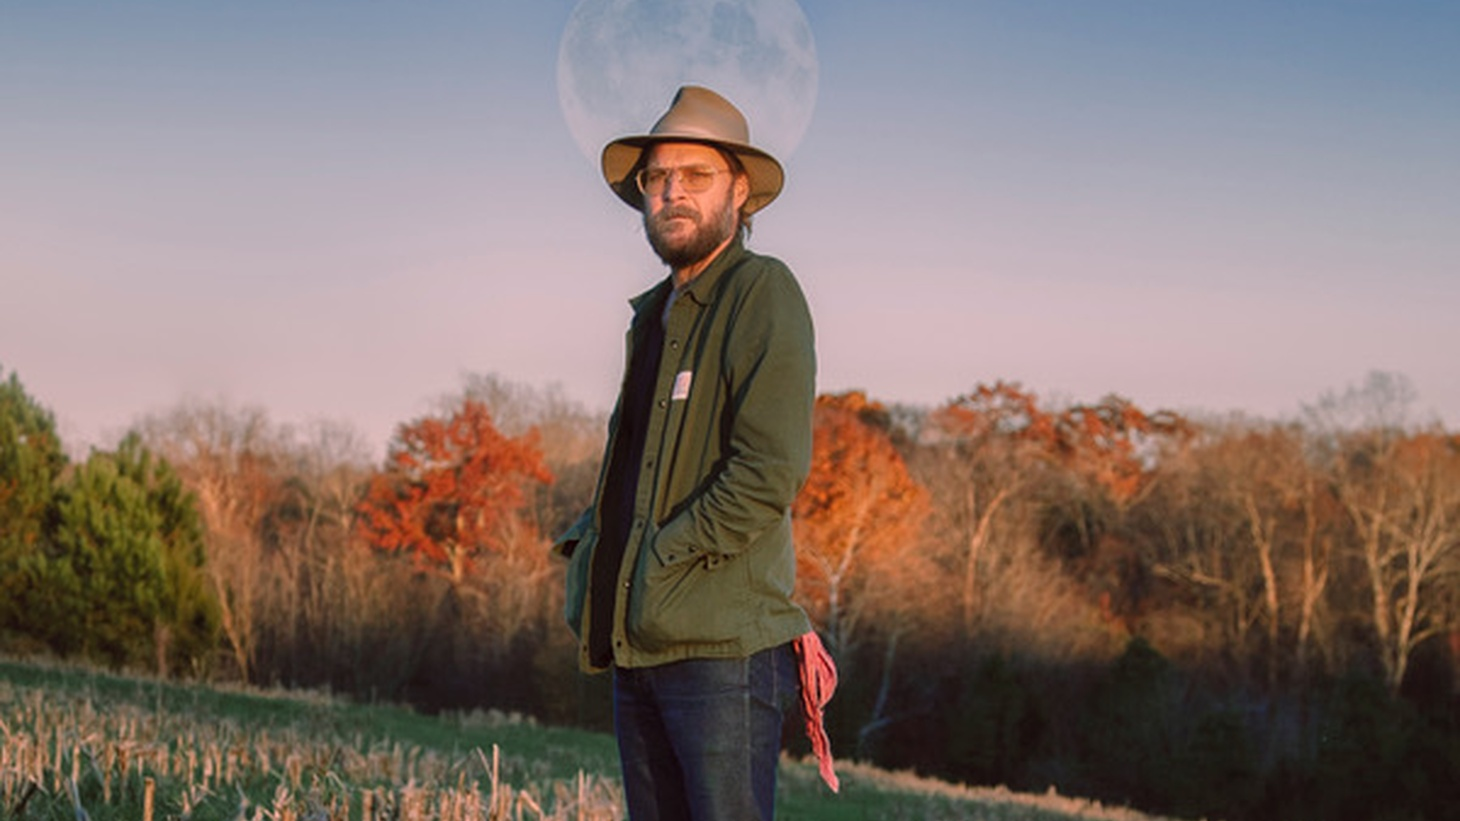 """Shortlisted for Best Americana album at the Grammys this year, Hiss Golden Messenger has been thinking about how we care for ourselves and others. Writing """"Sanctuary"""" was a way to make sense of a tangled world as he looked for shelter within."""